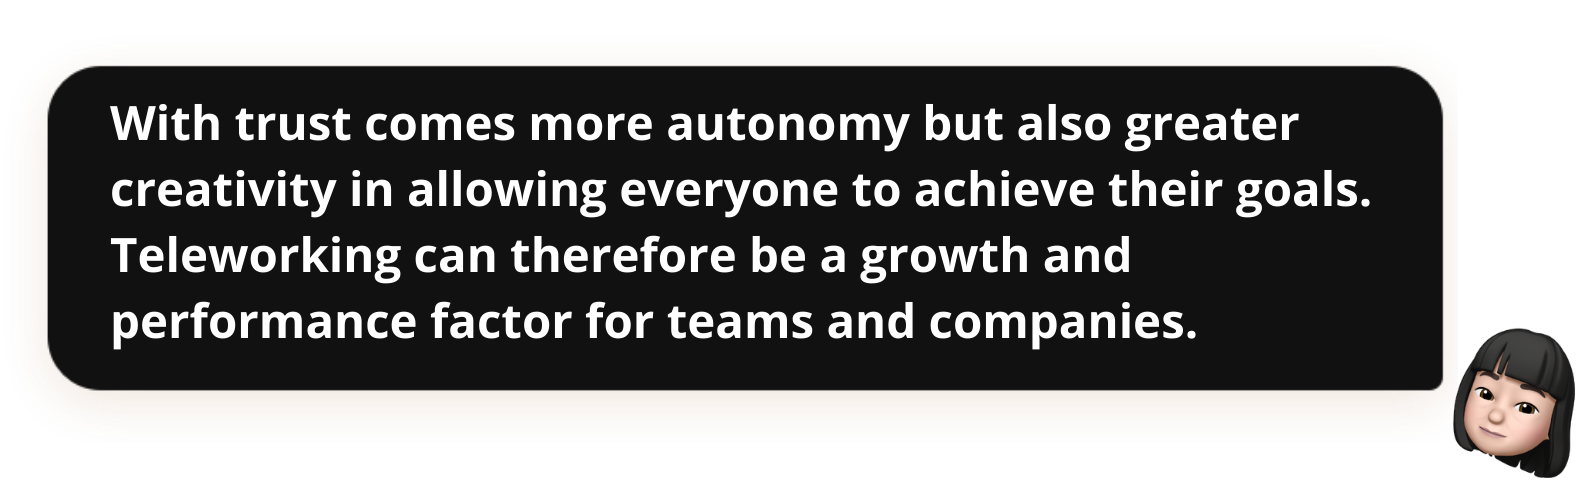 With trust comes more autonomy but also greater creativity in allowing everyone to achieve their goals. Teleworking can therefore be a growth and performance factor for teams and companies.